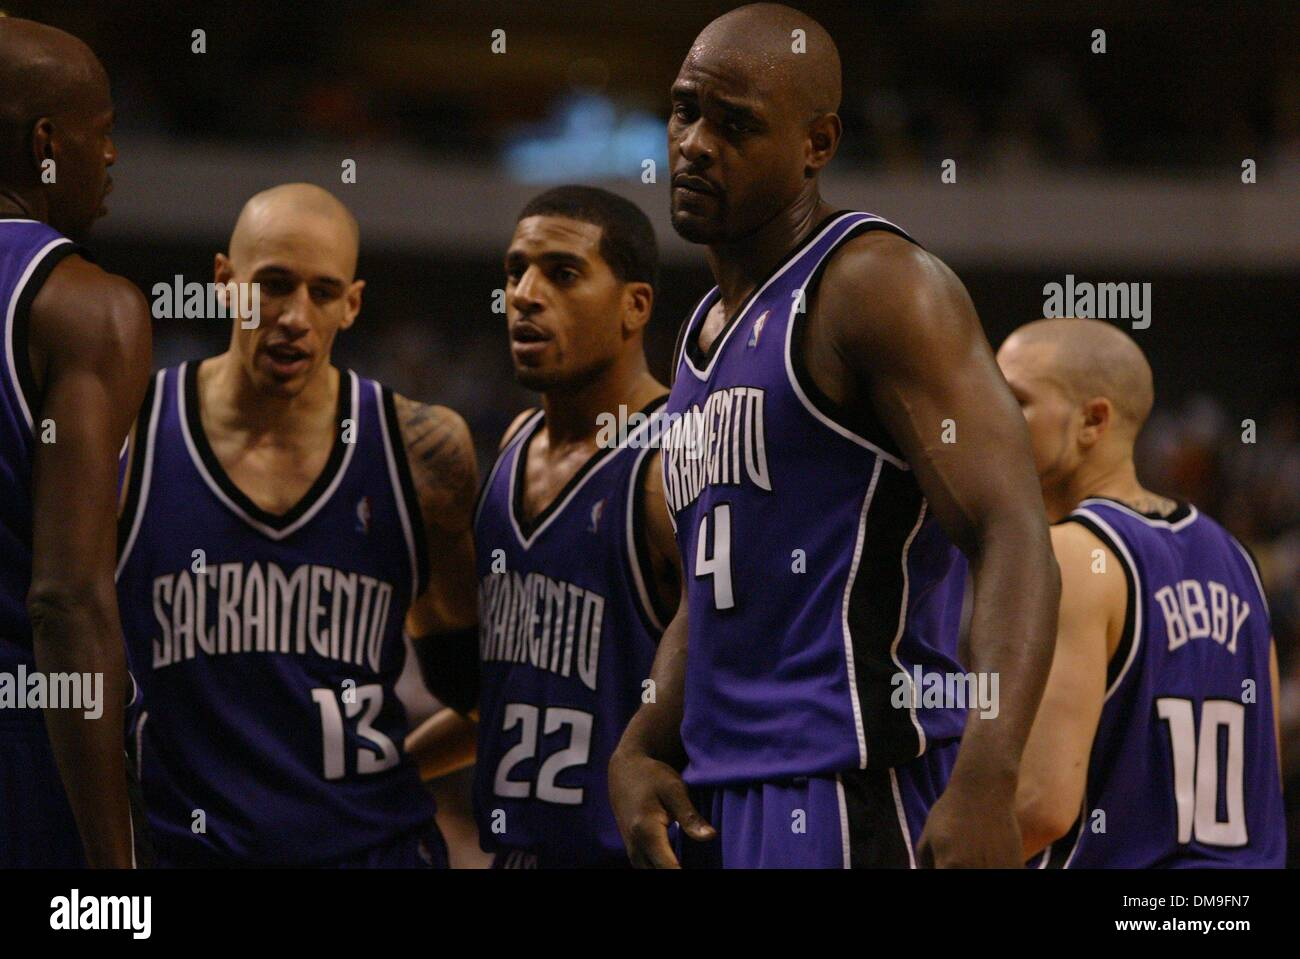 Dissappointment shows on the face of Chris Webber as Keon Clark